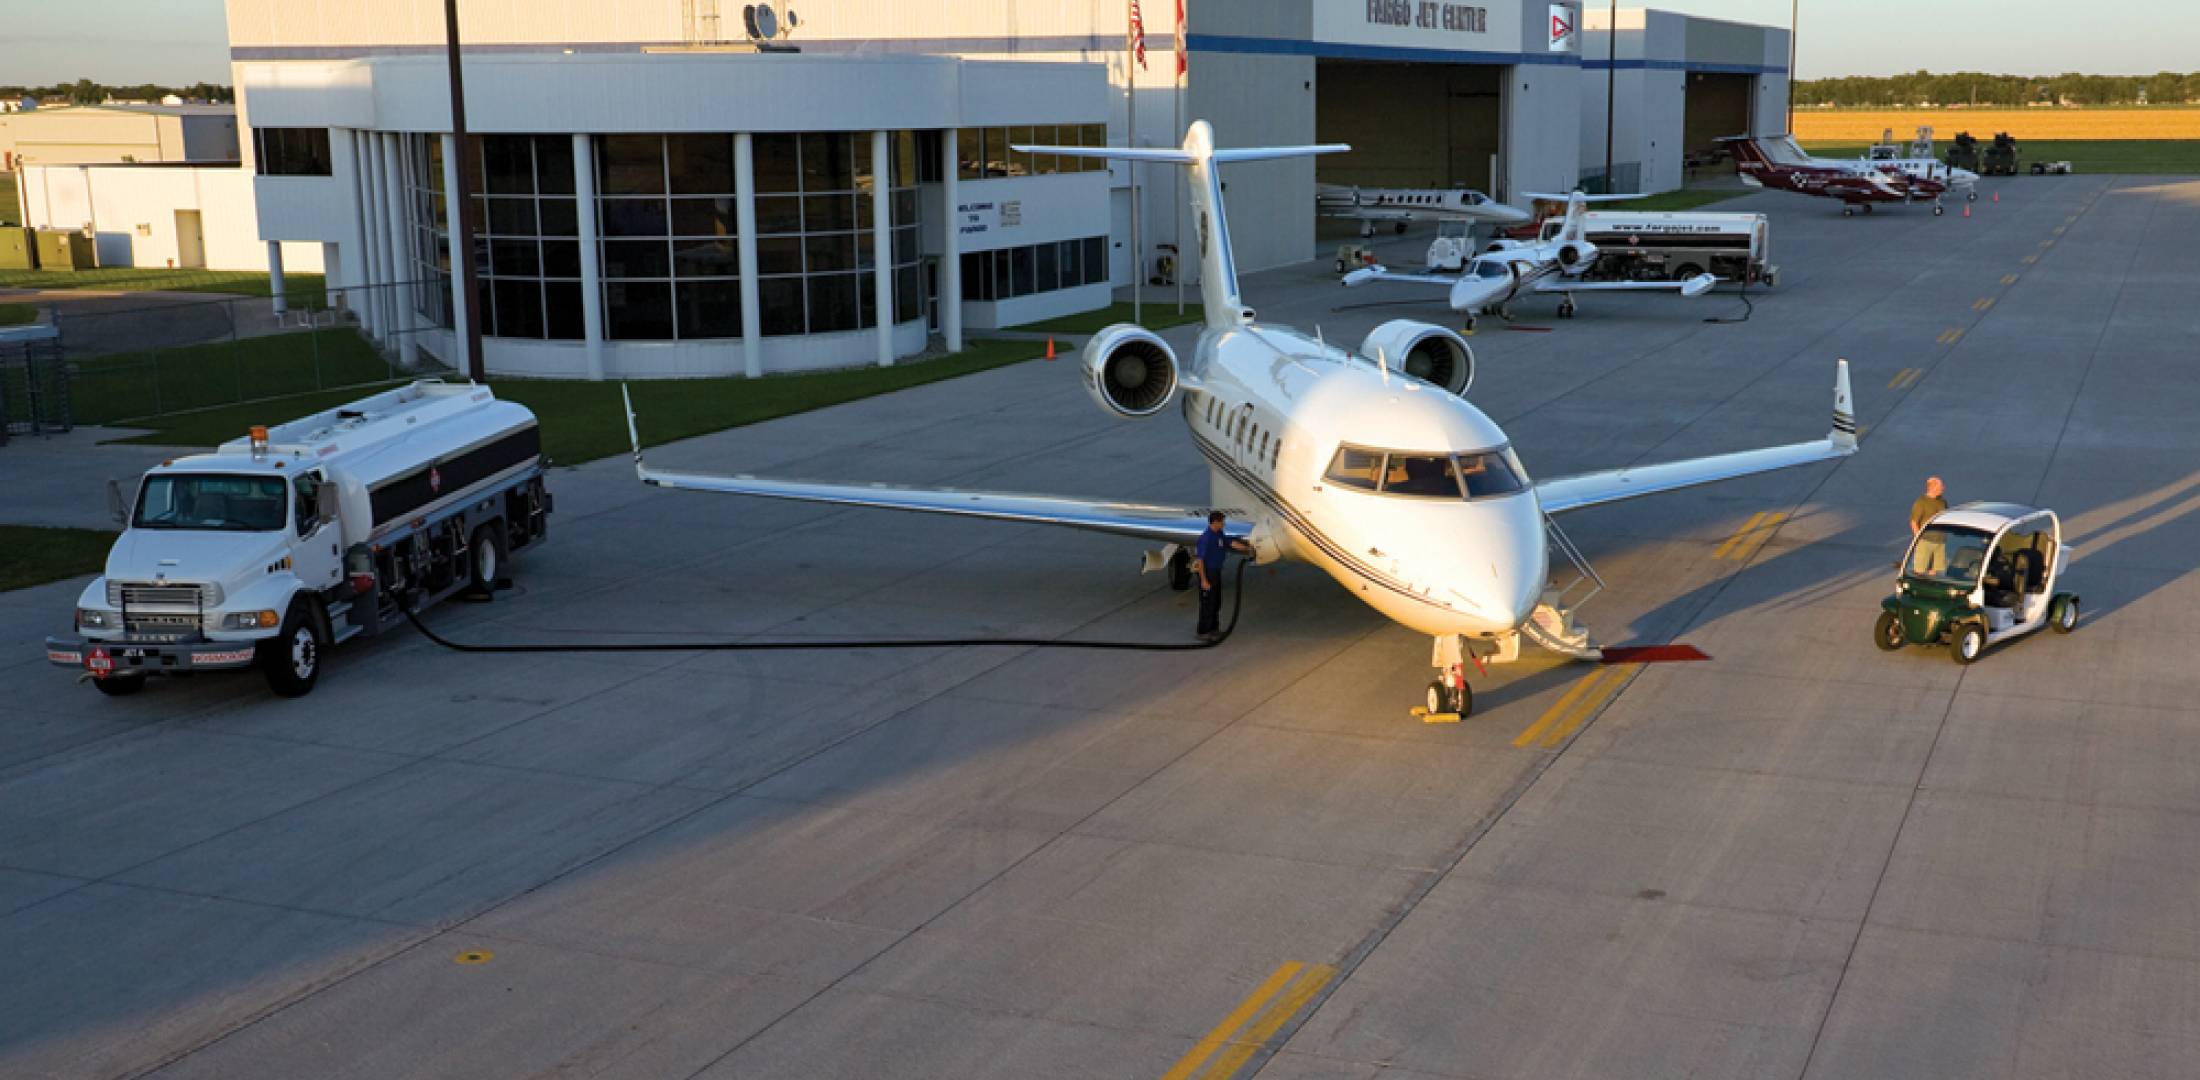 A popular tech stop for international flights, North Dakota's Hector International recently moved its customs facility next to Fargo (N.D.) Jet Center,  making it more convenient for business aircraft passengers to clear customs.